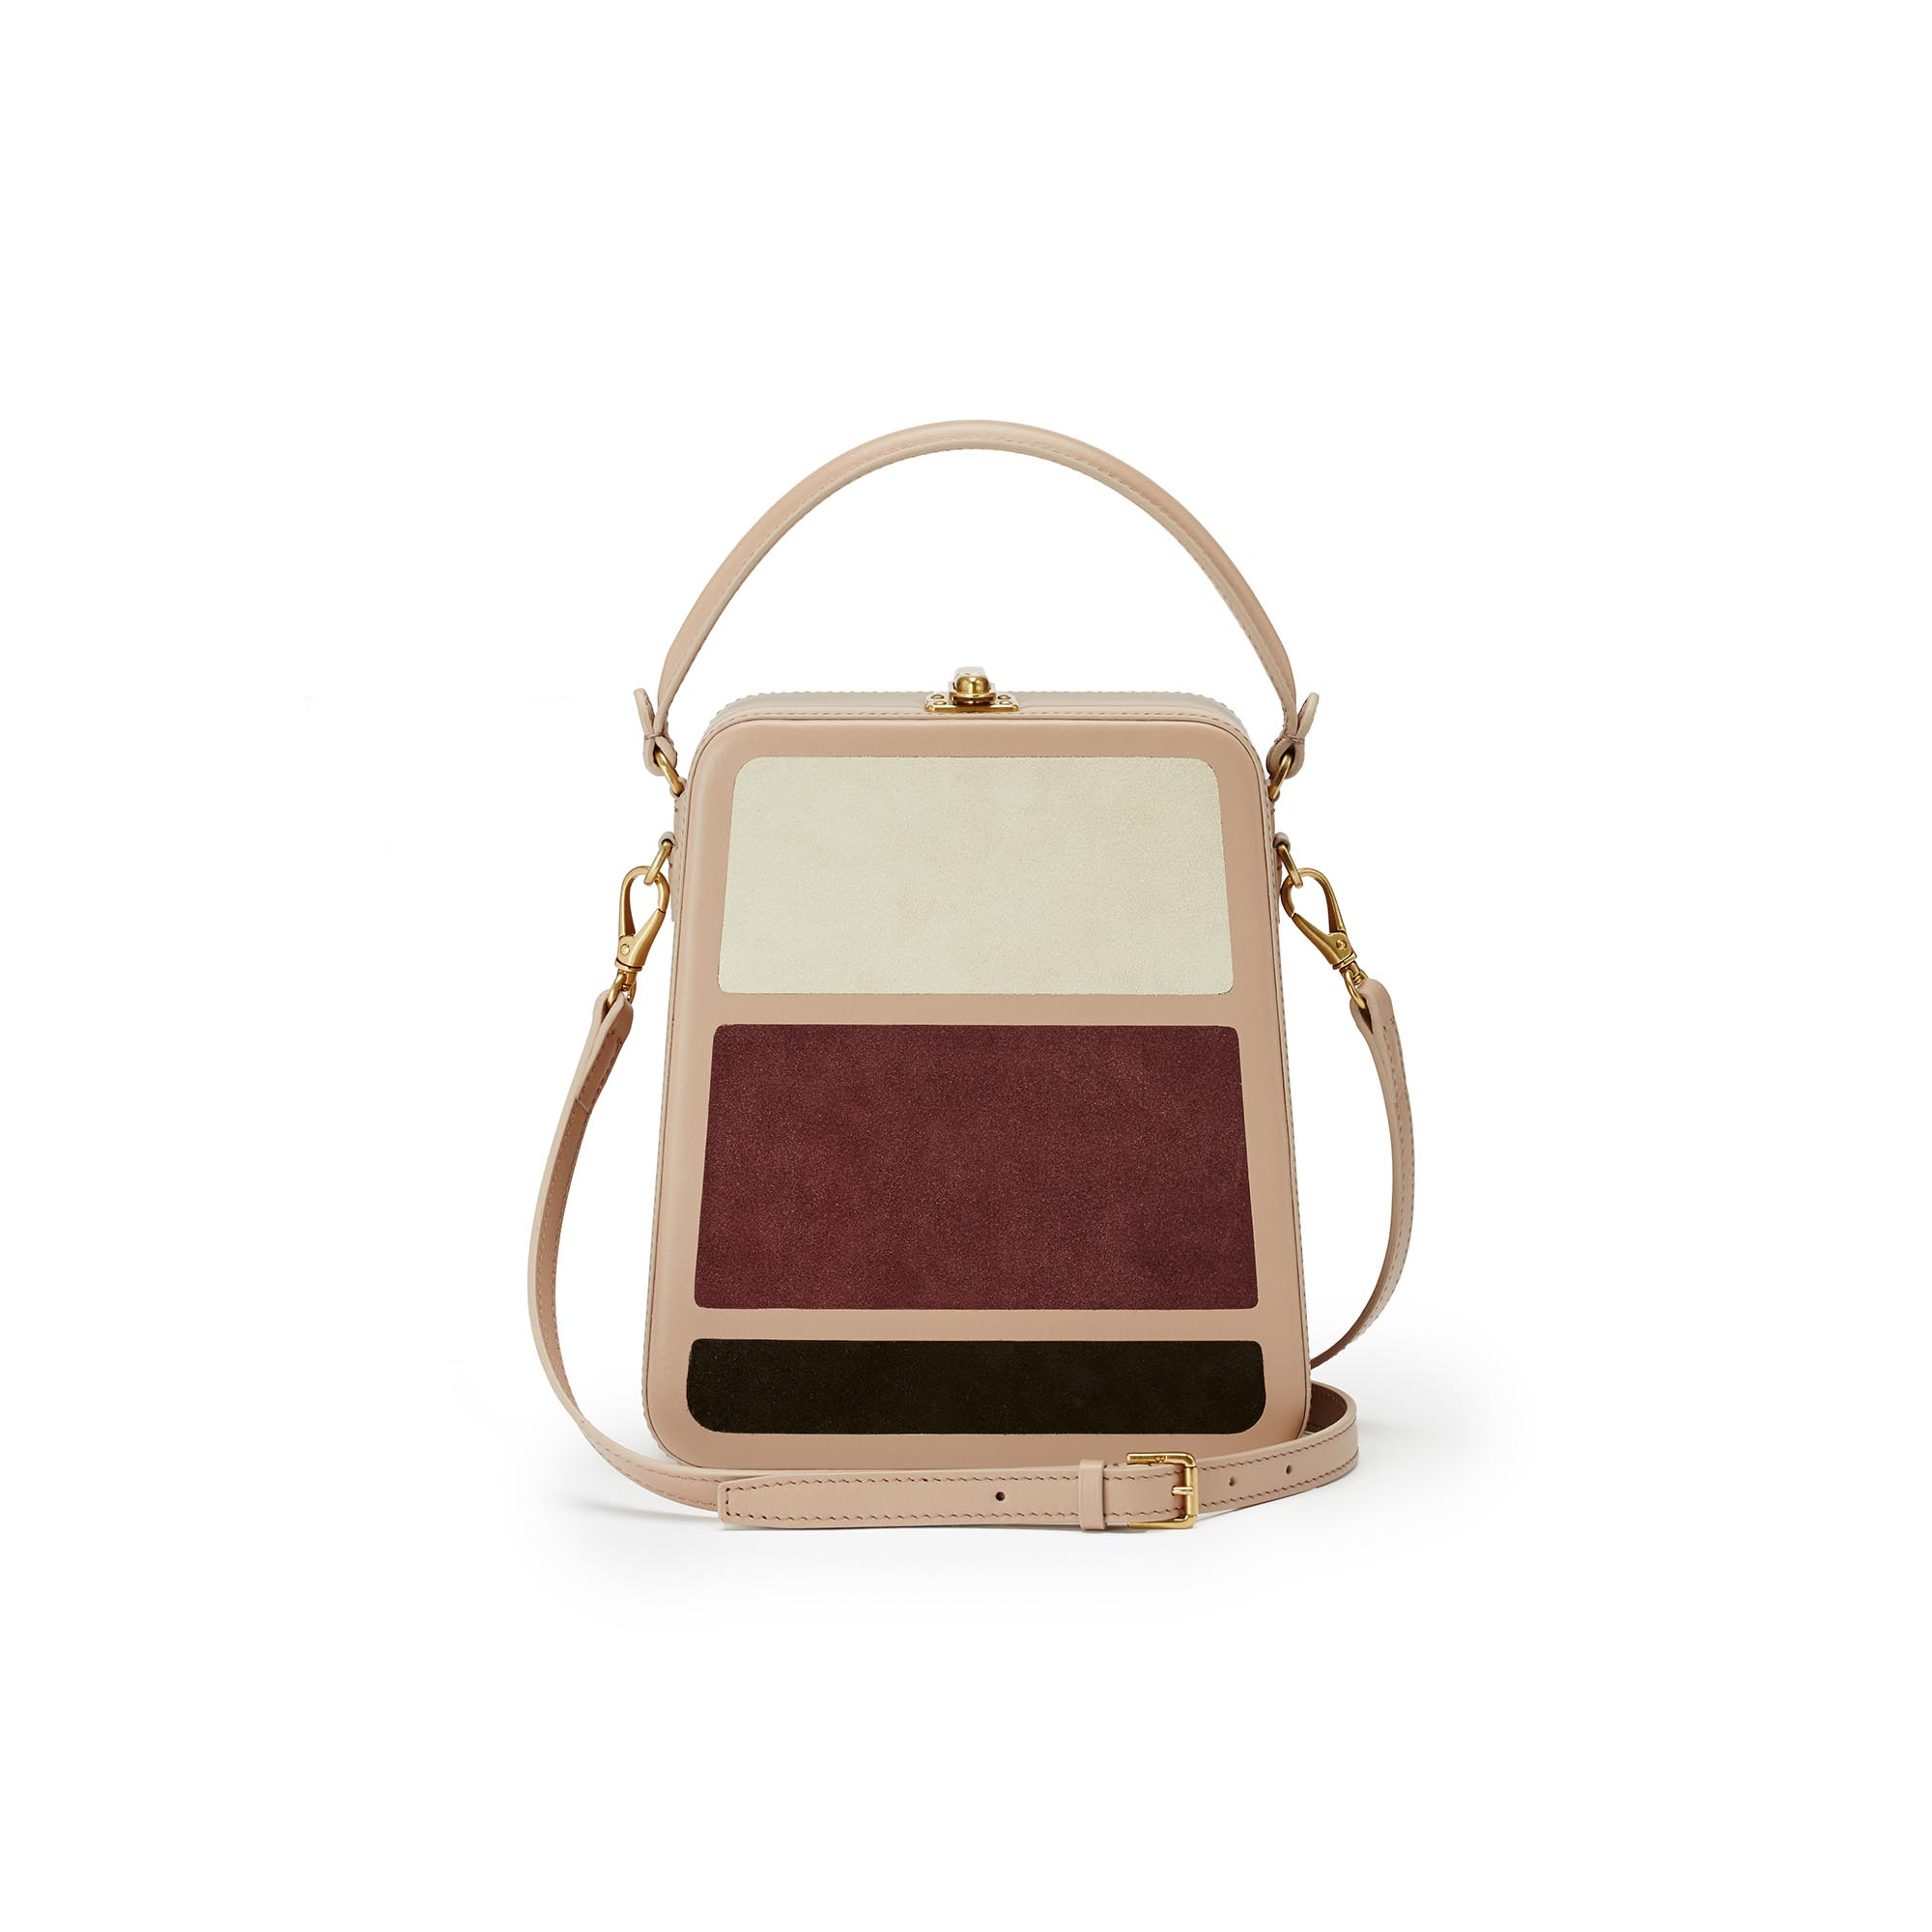 Tall-Bertoncina-rose-ivory-wine-suede-bag-Bertoni-1949